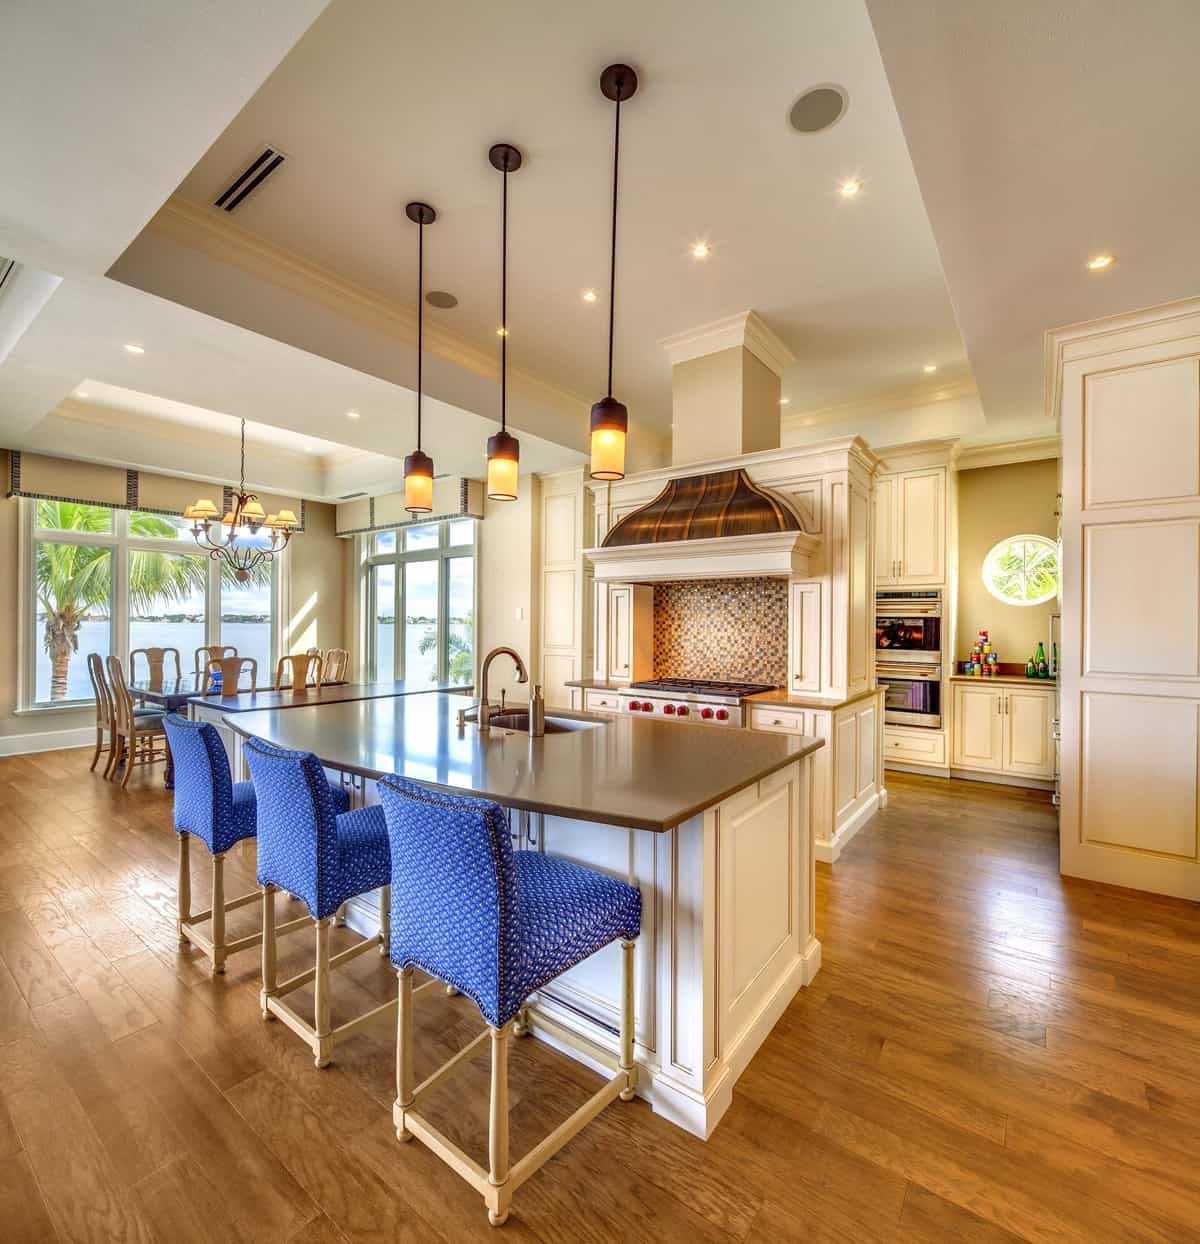 Contemporary Kitchen Chairs In Bright Blue Hue Color (Image 5 of 15)